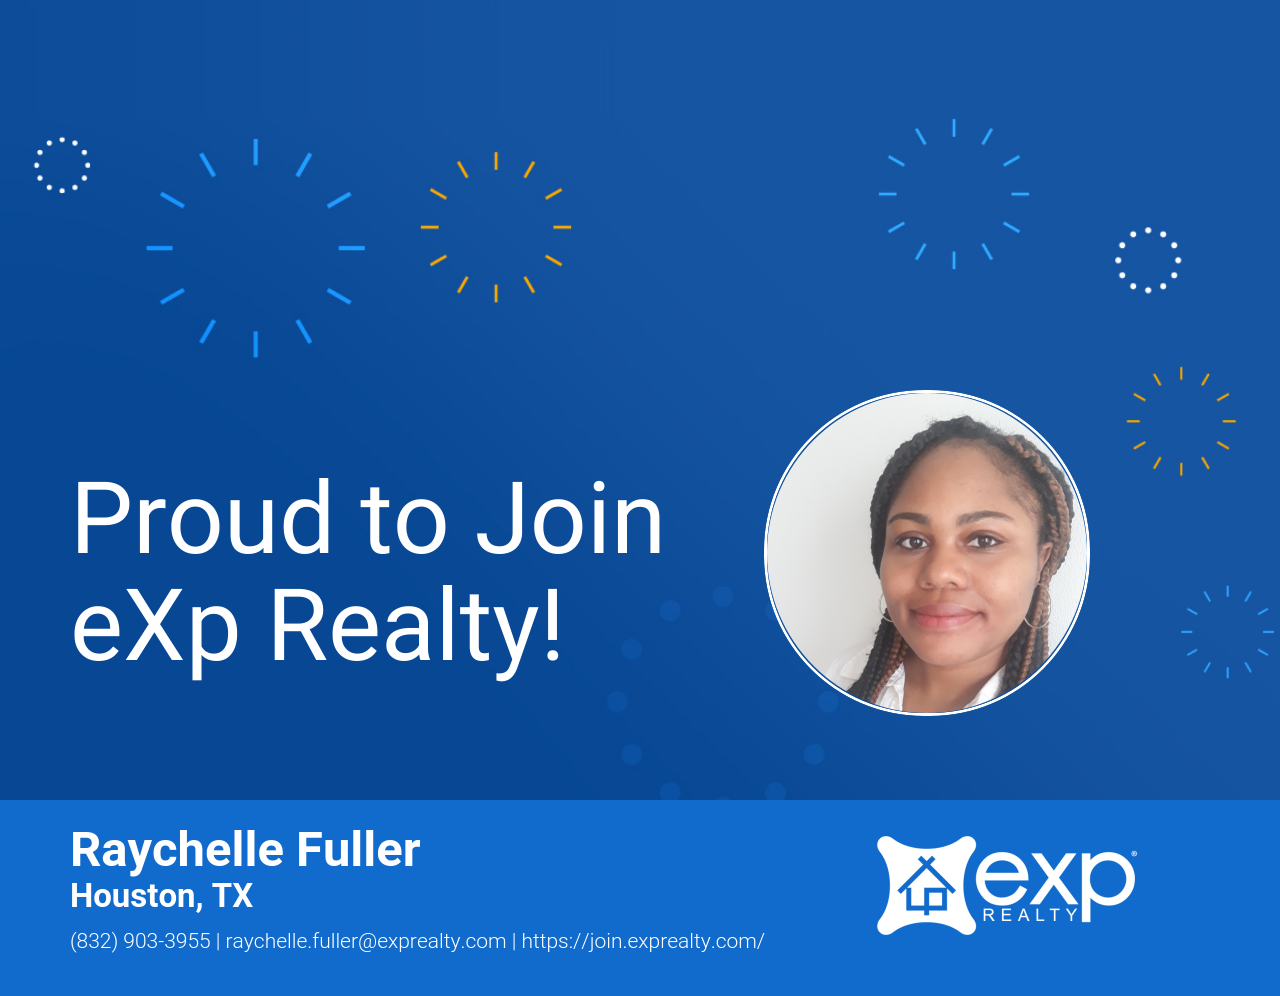 Raychelle Fuller Joined eXp Realty!